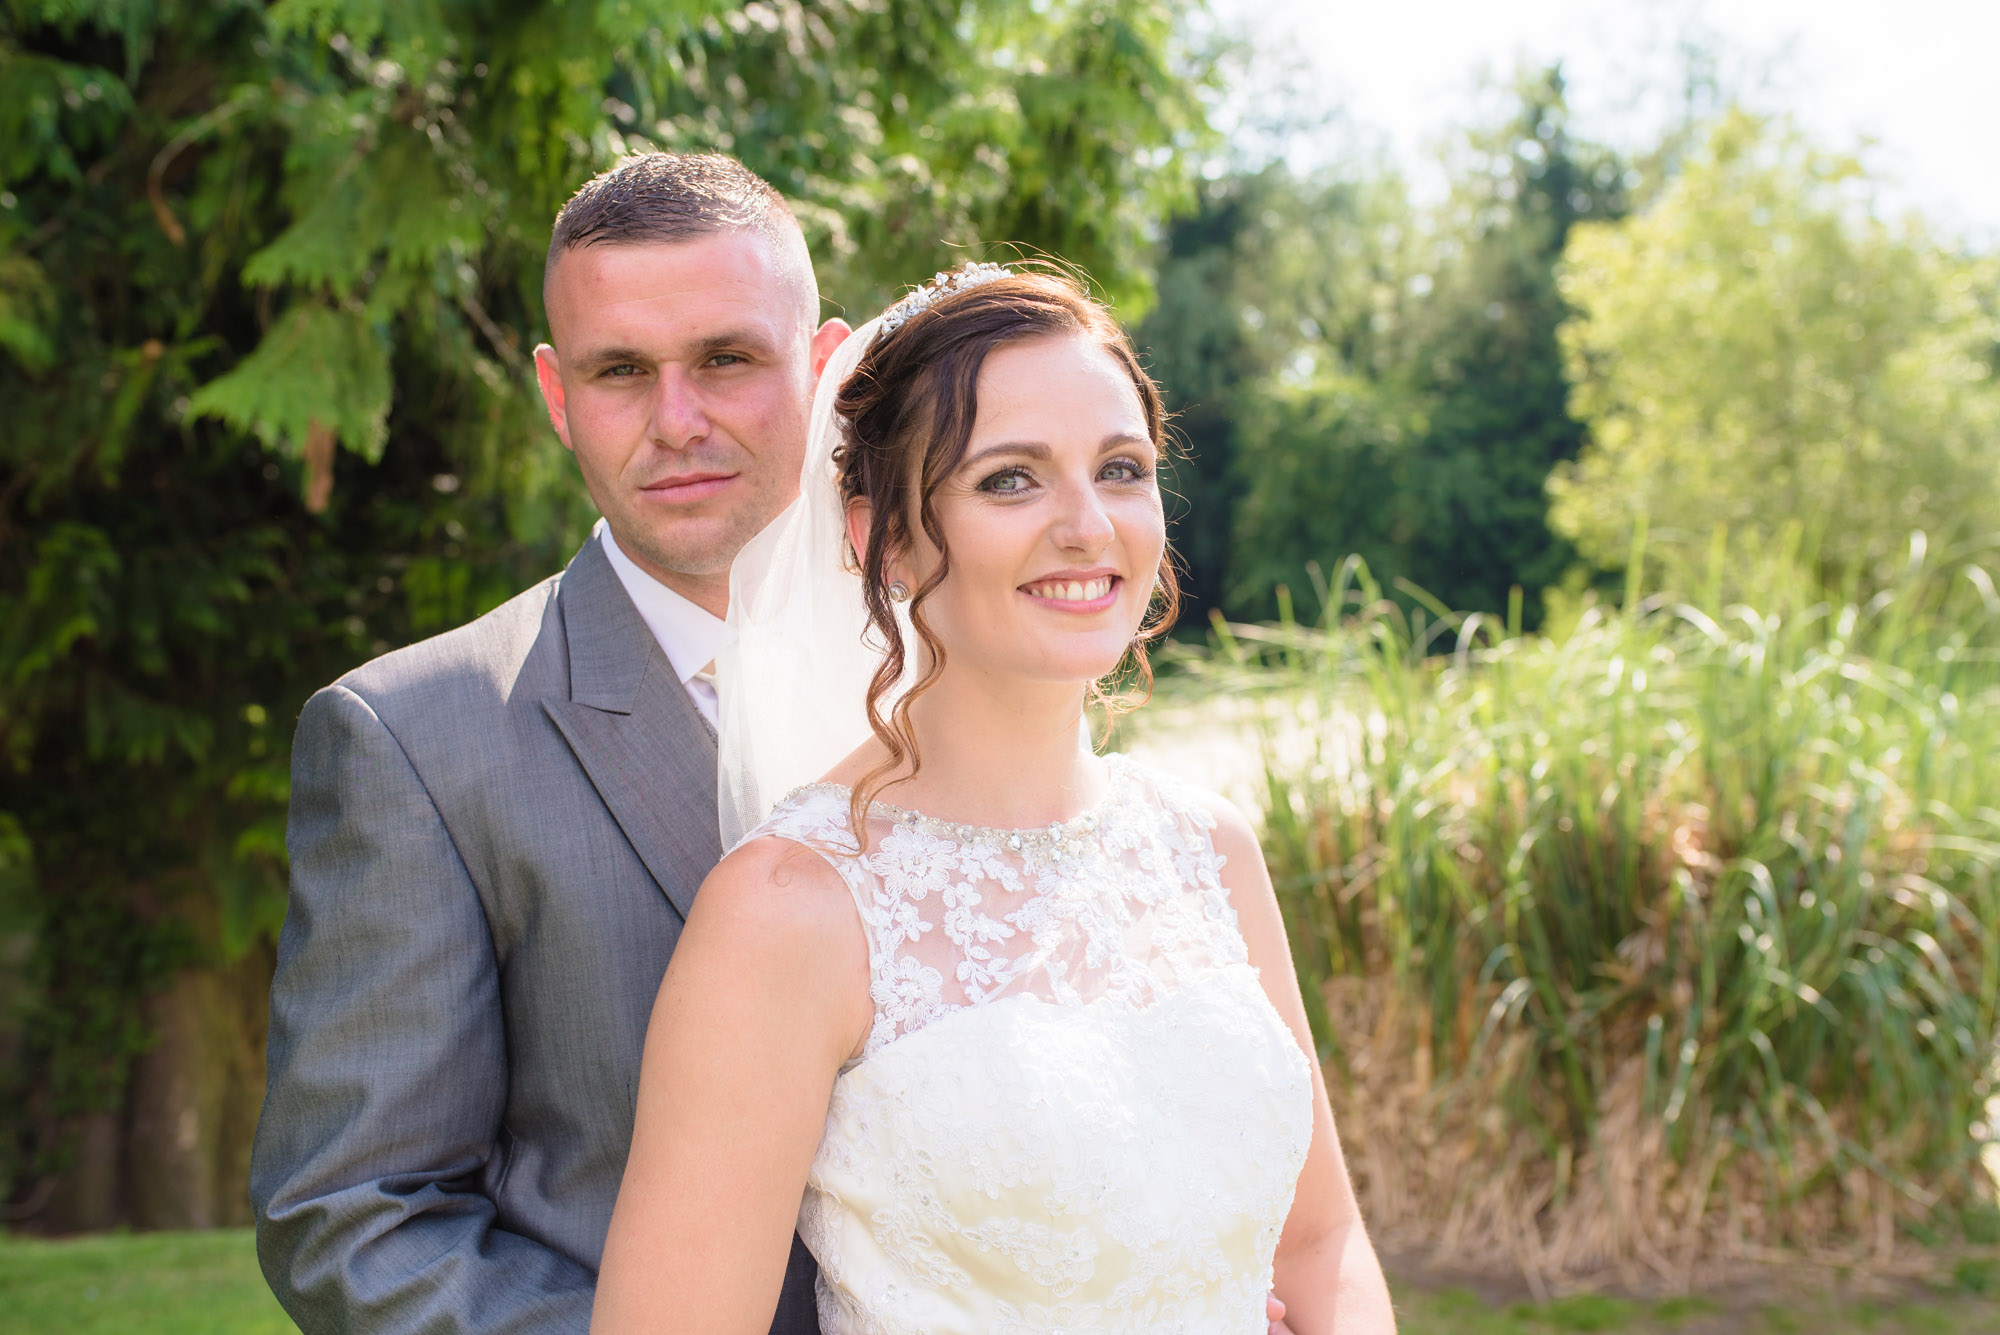 Shropshire Wedding Photographer bride and groom portrait